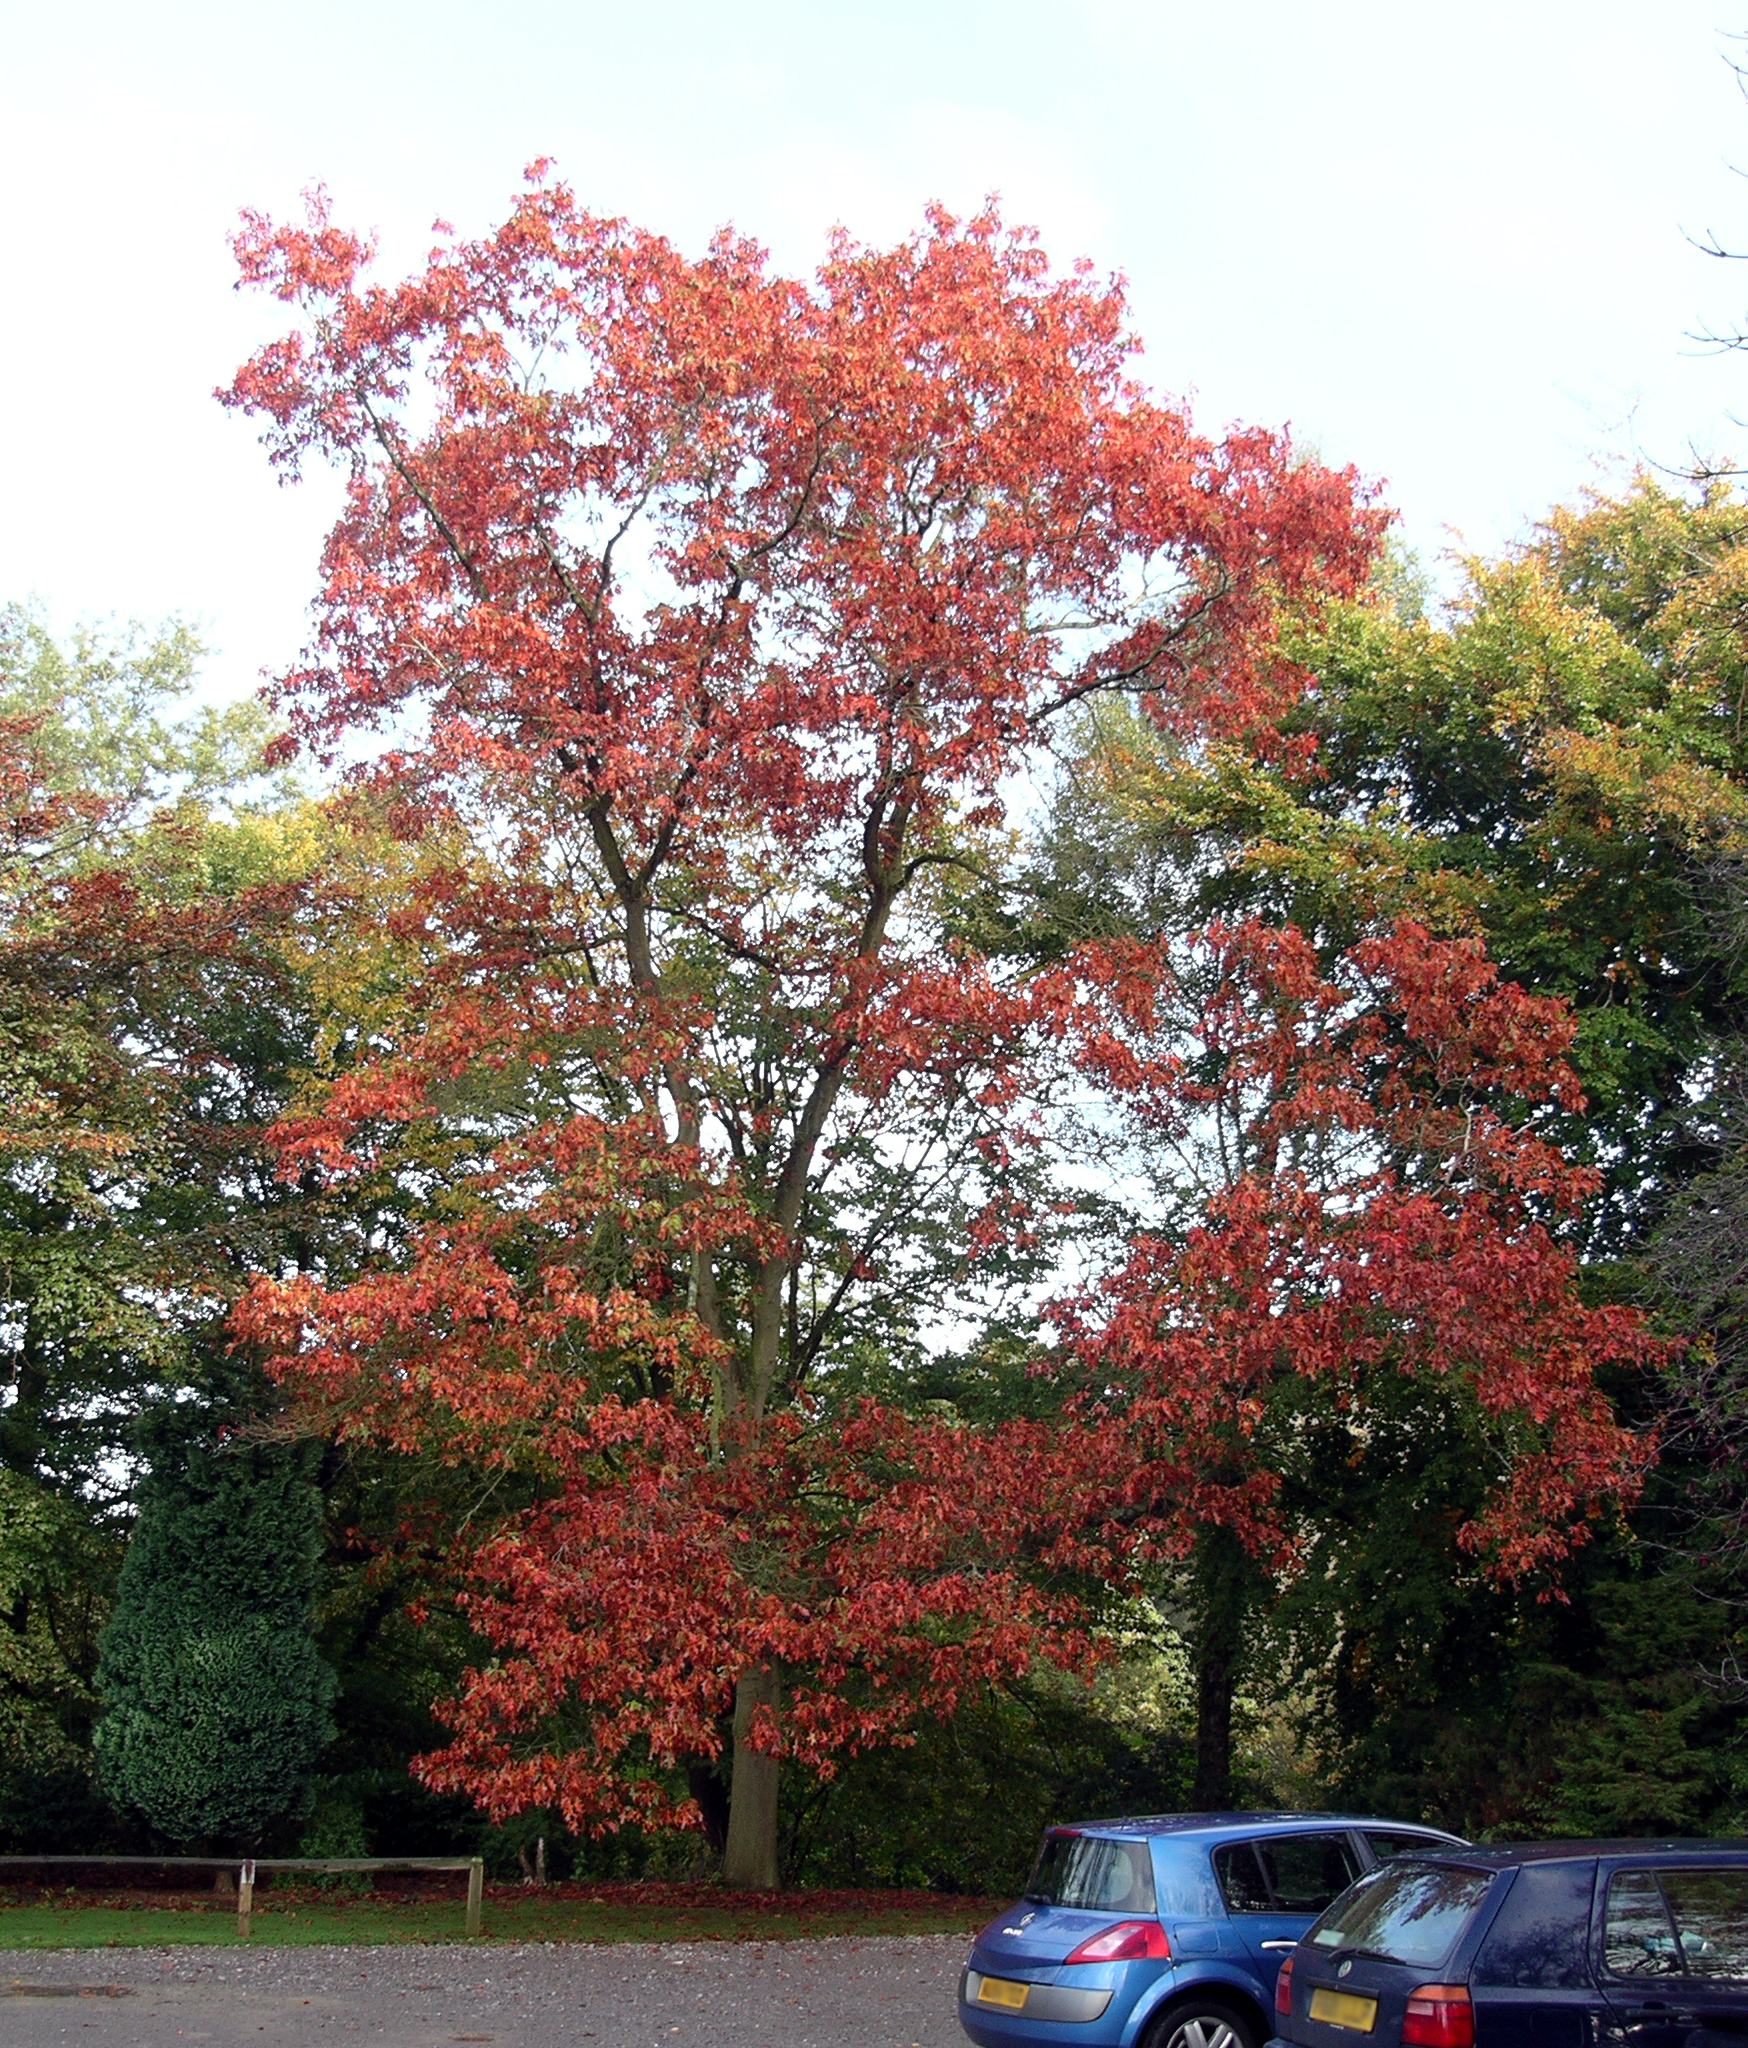 The quercus rubra,  our well known and loved red oak